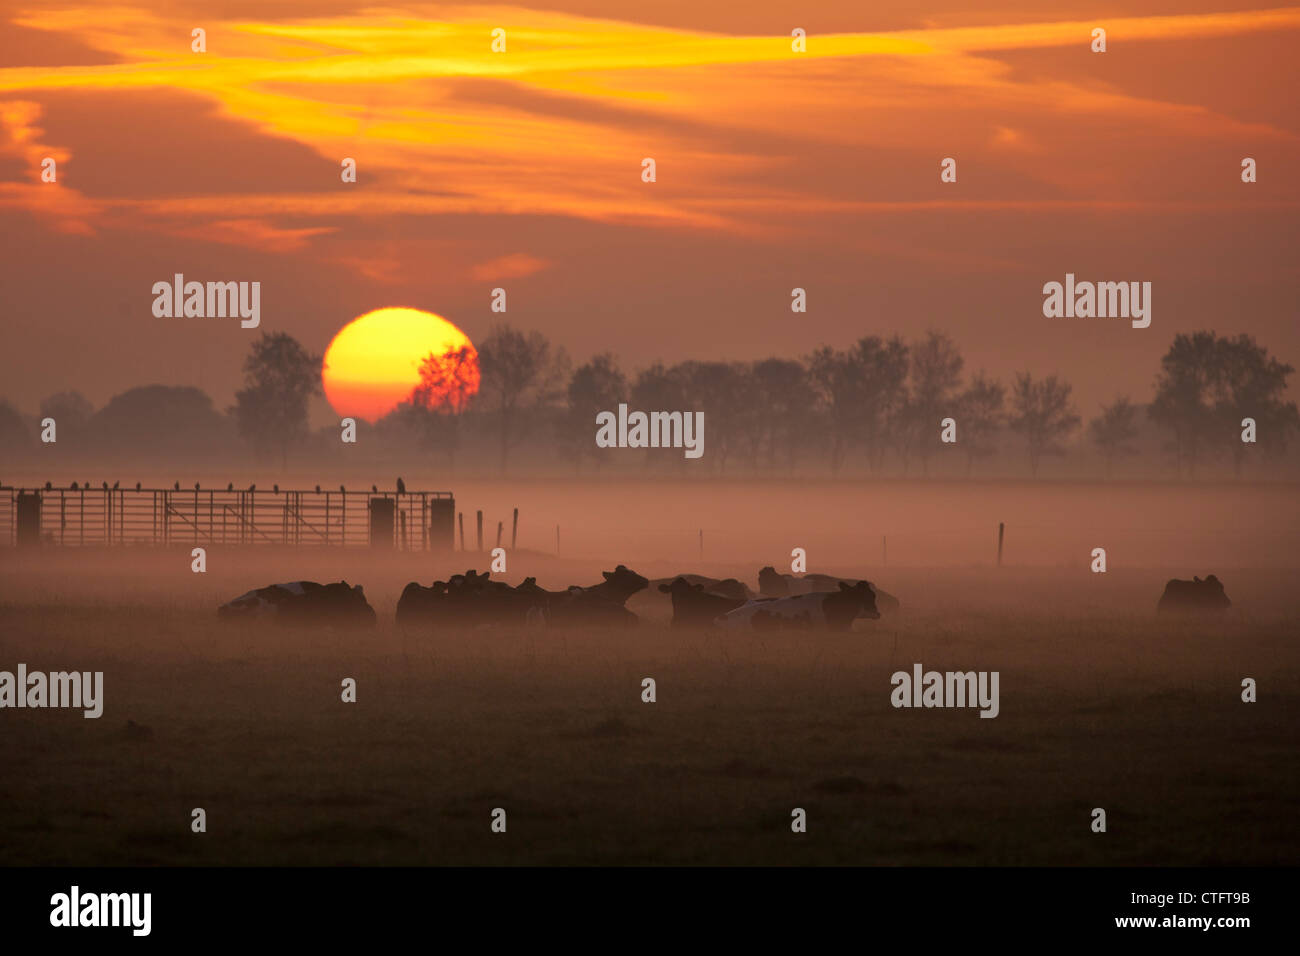 The Netherlands, Noord Beemster, Beemster Polder, UNESCO World Heritage site. Cows in morning mist. Sunrise. - Stock Image